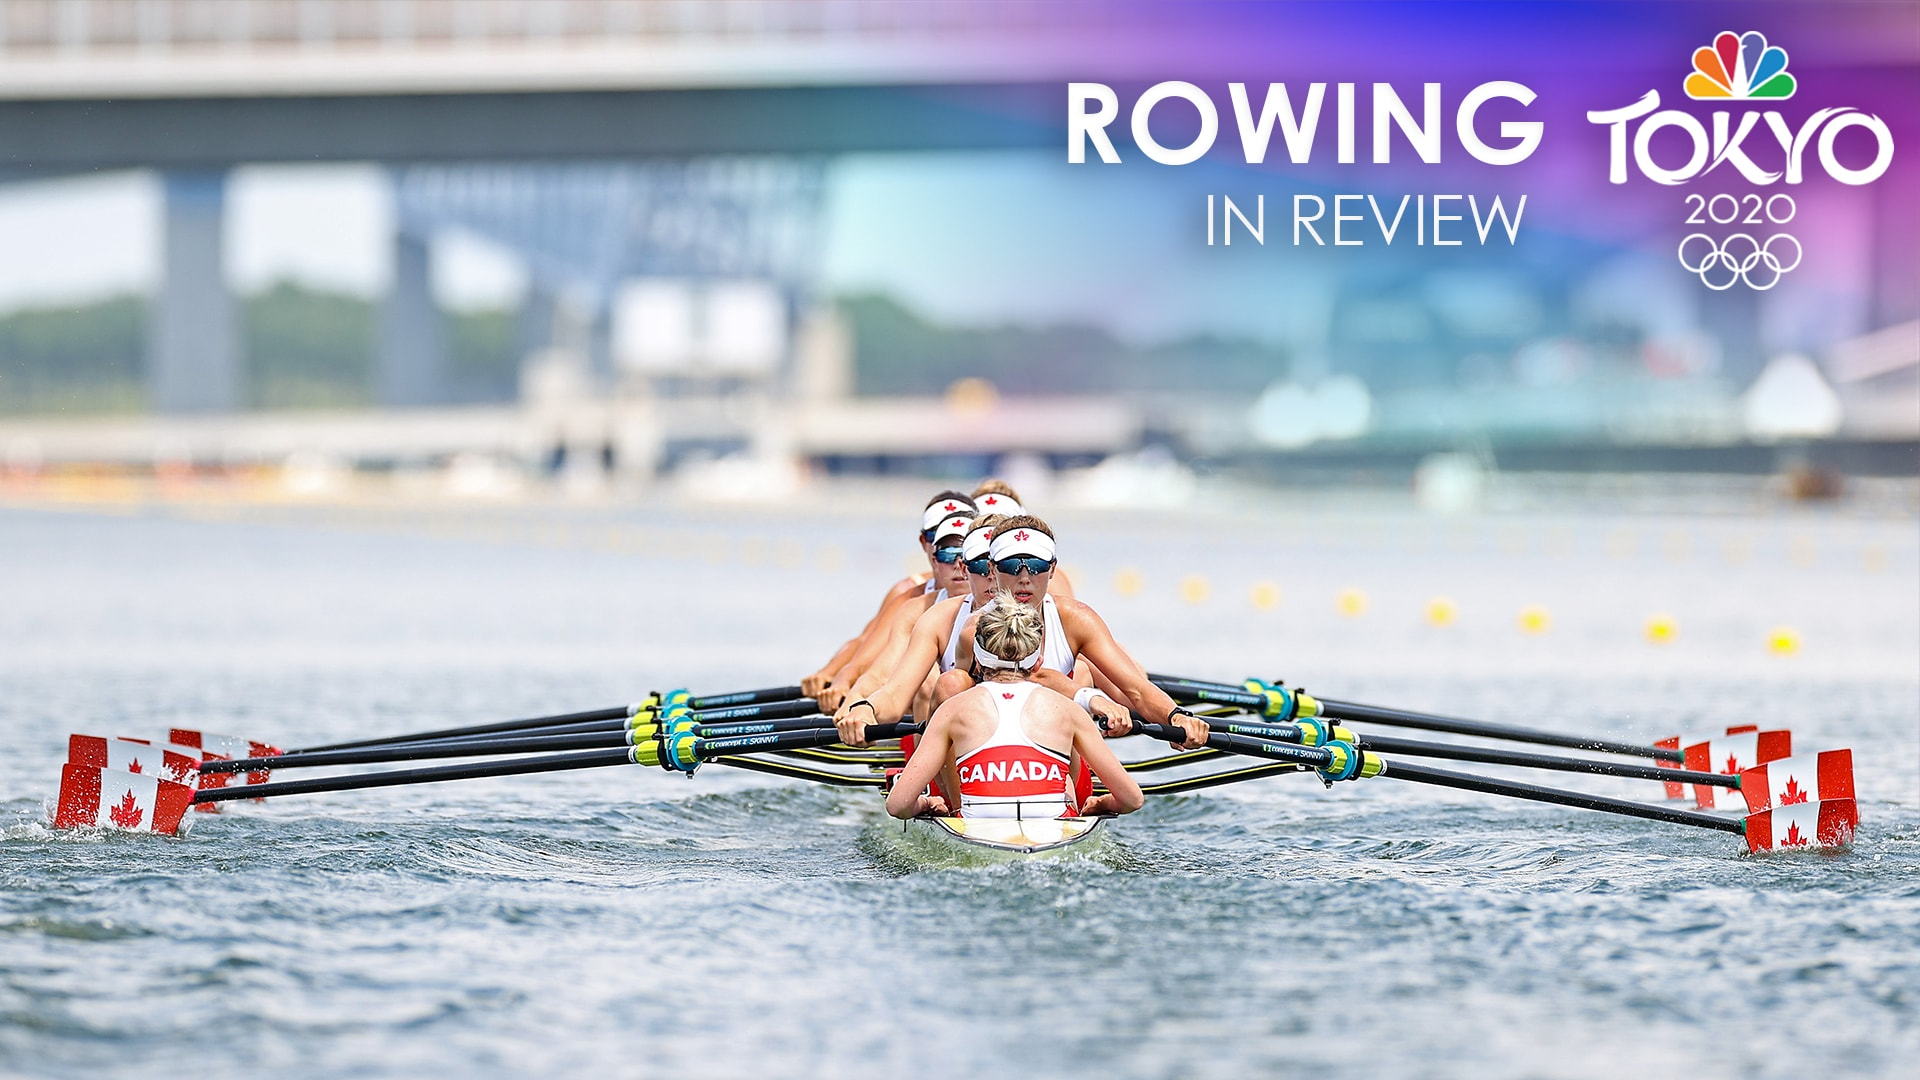 Relive the best moments of rowing at the Tokyo Olympics.